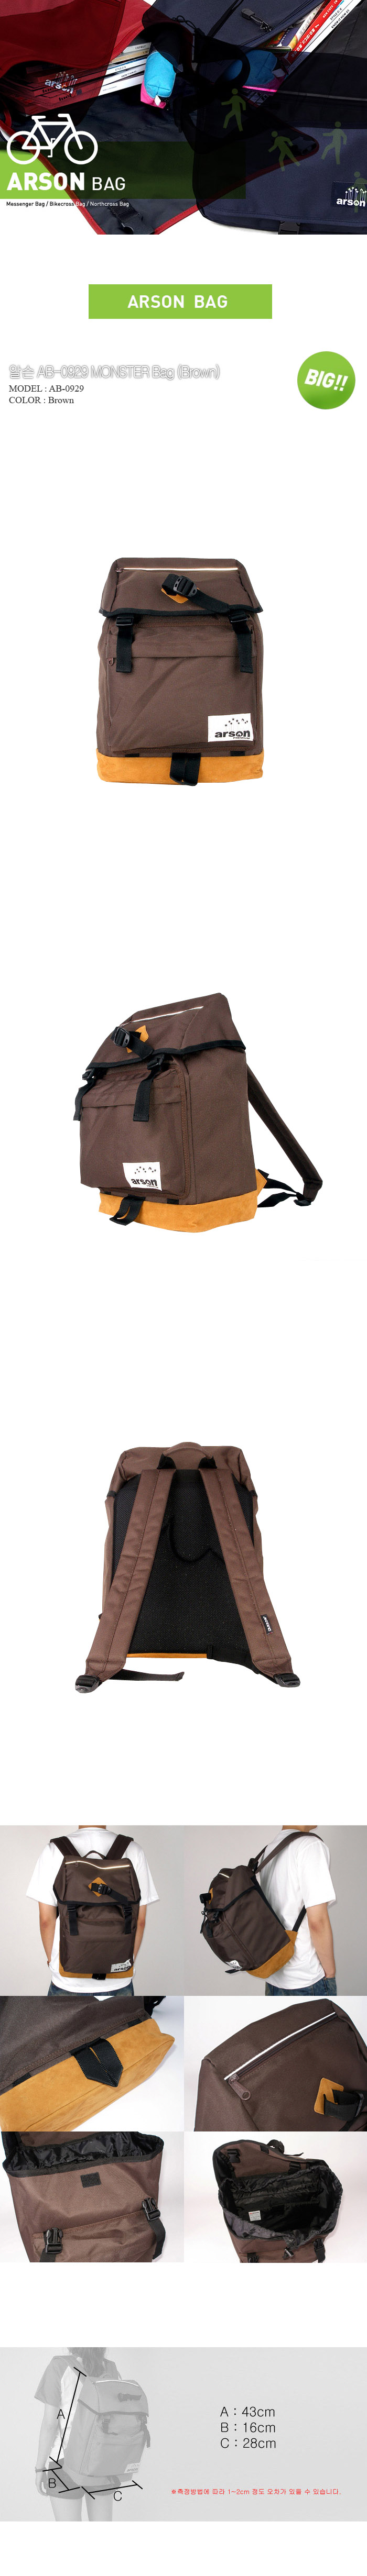 [ ARSON ] AB-0929 (Brown)/Backpack School Bag